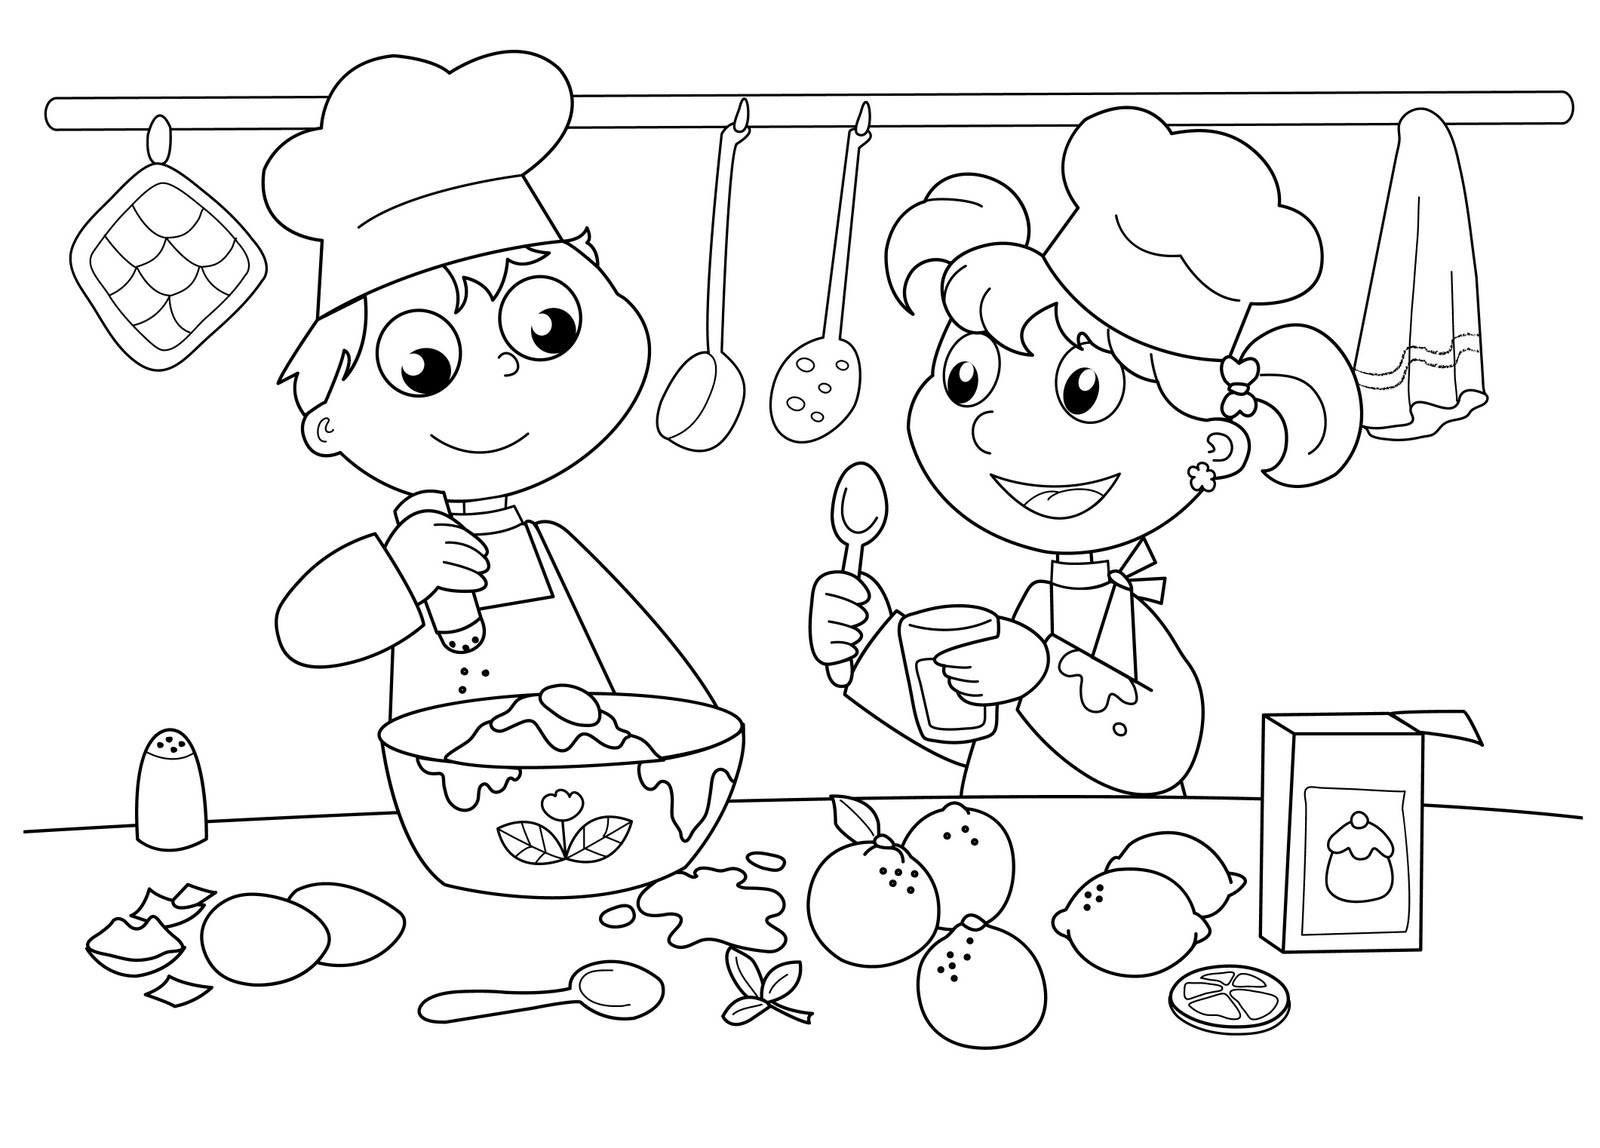 baked treats coloring pages - photo#27